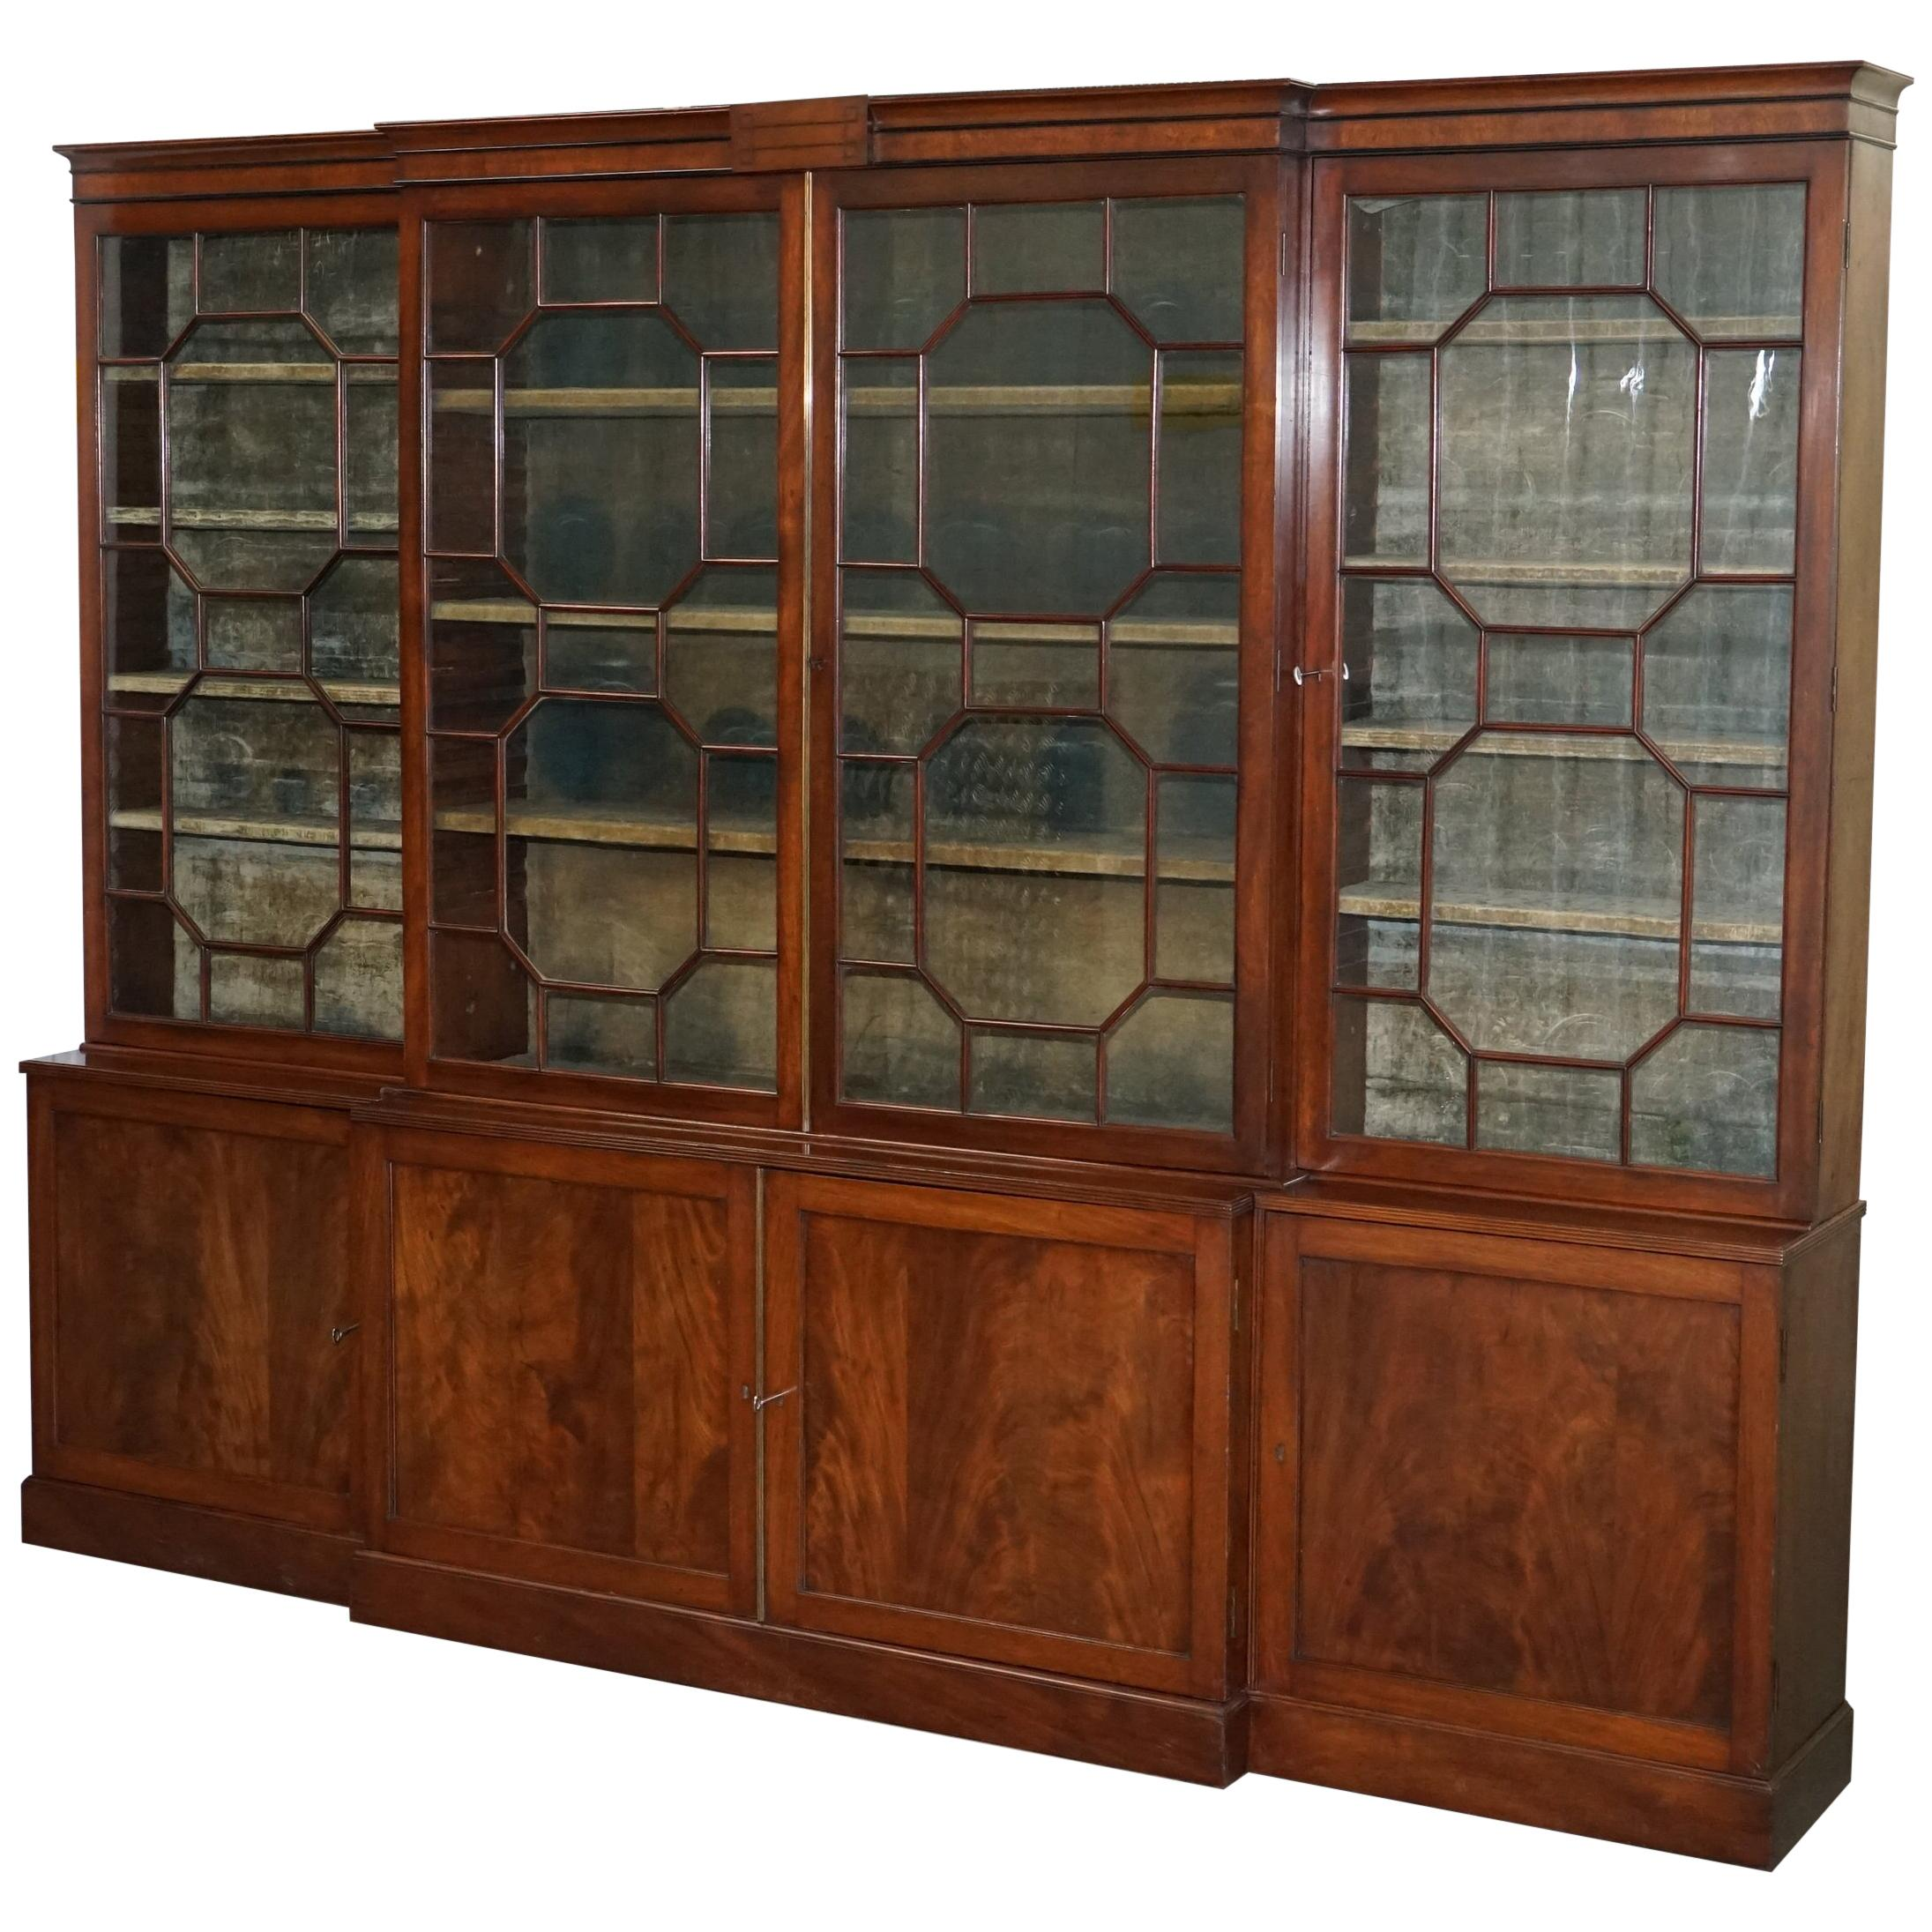 Antique Furniture Cabinets Stunning Mahogany Chippendale Style Astral Glazed Display Cabinet